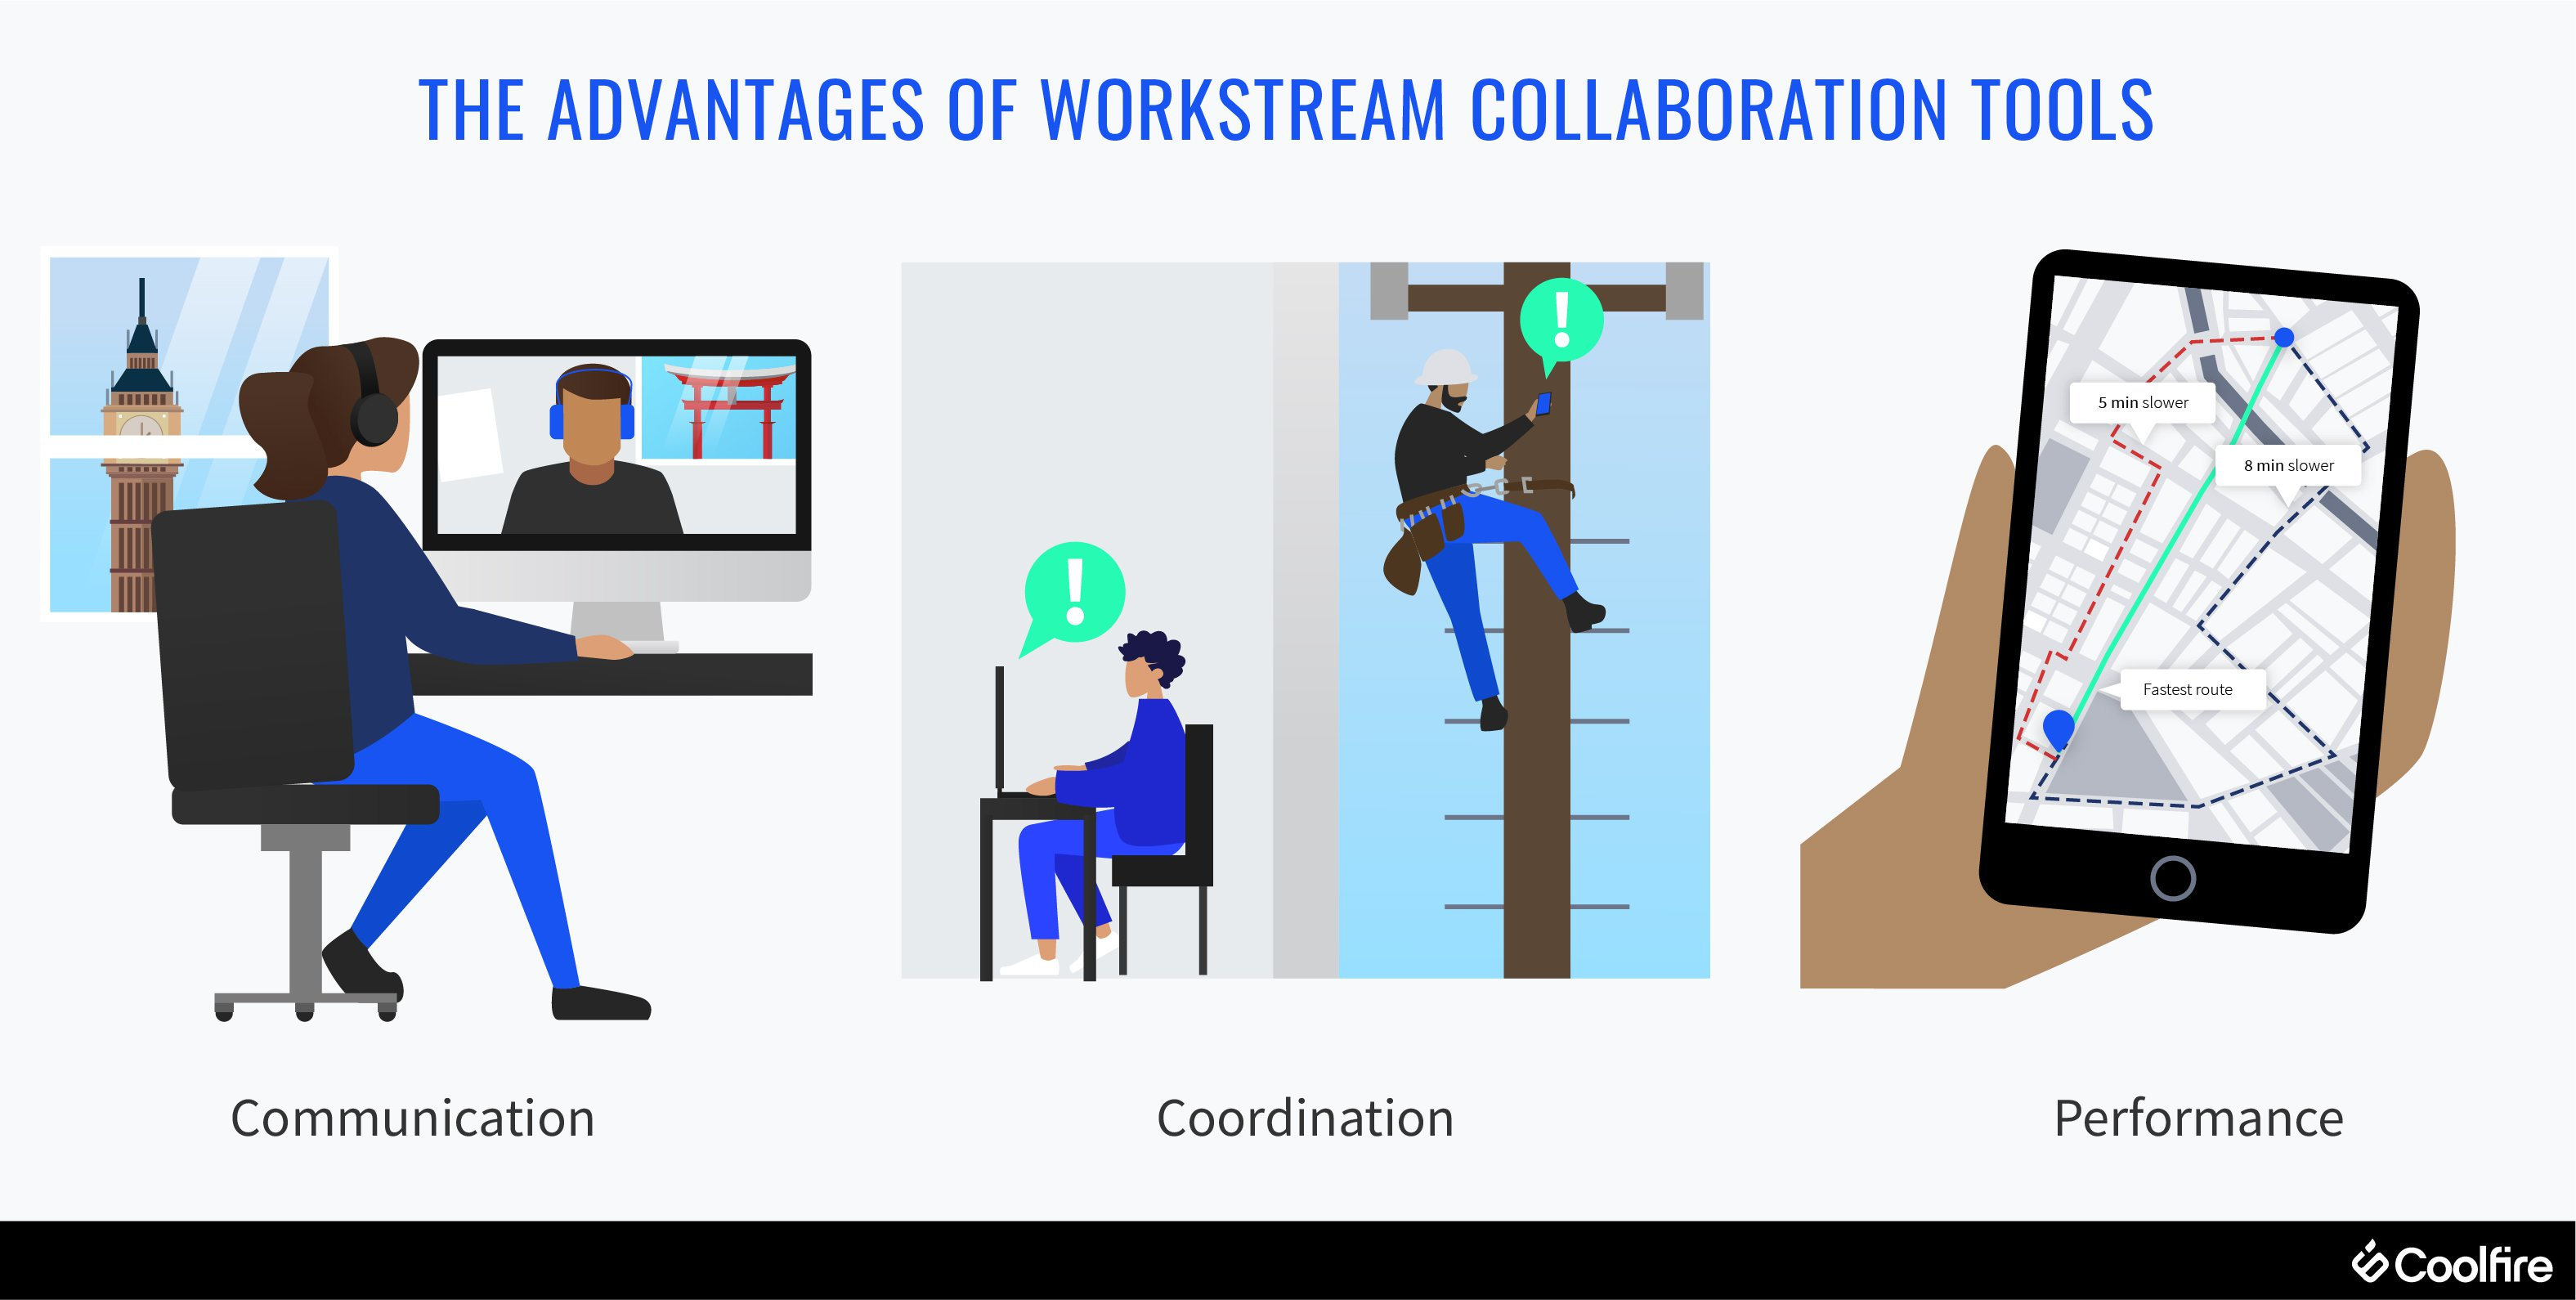 The benefits of workstream collaboration